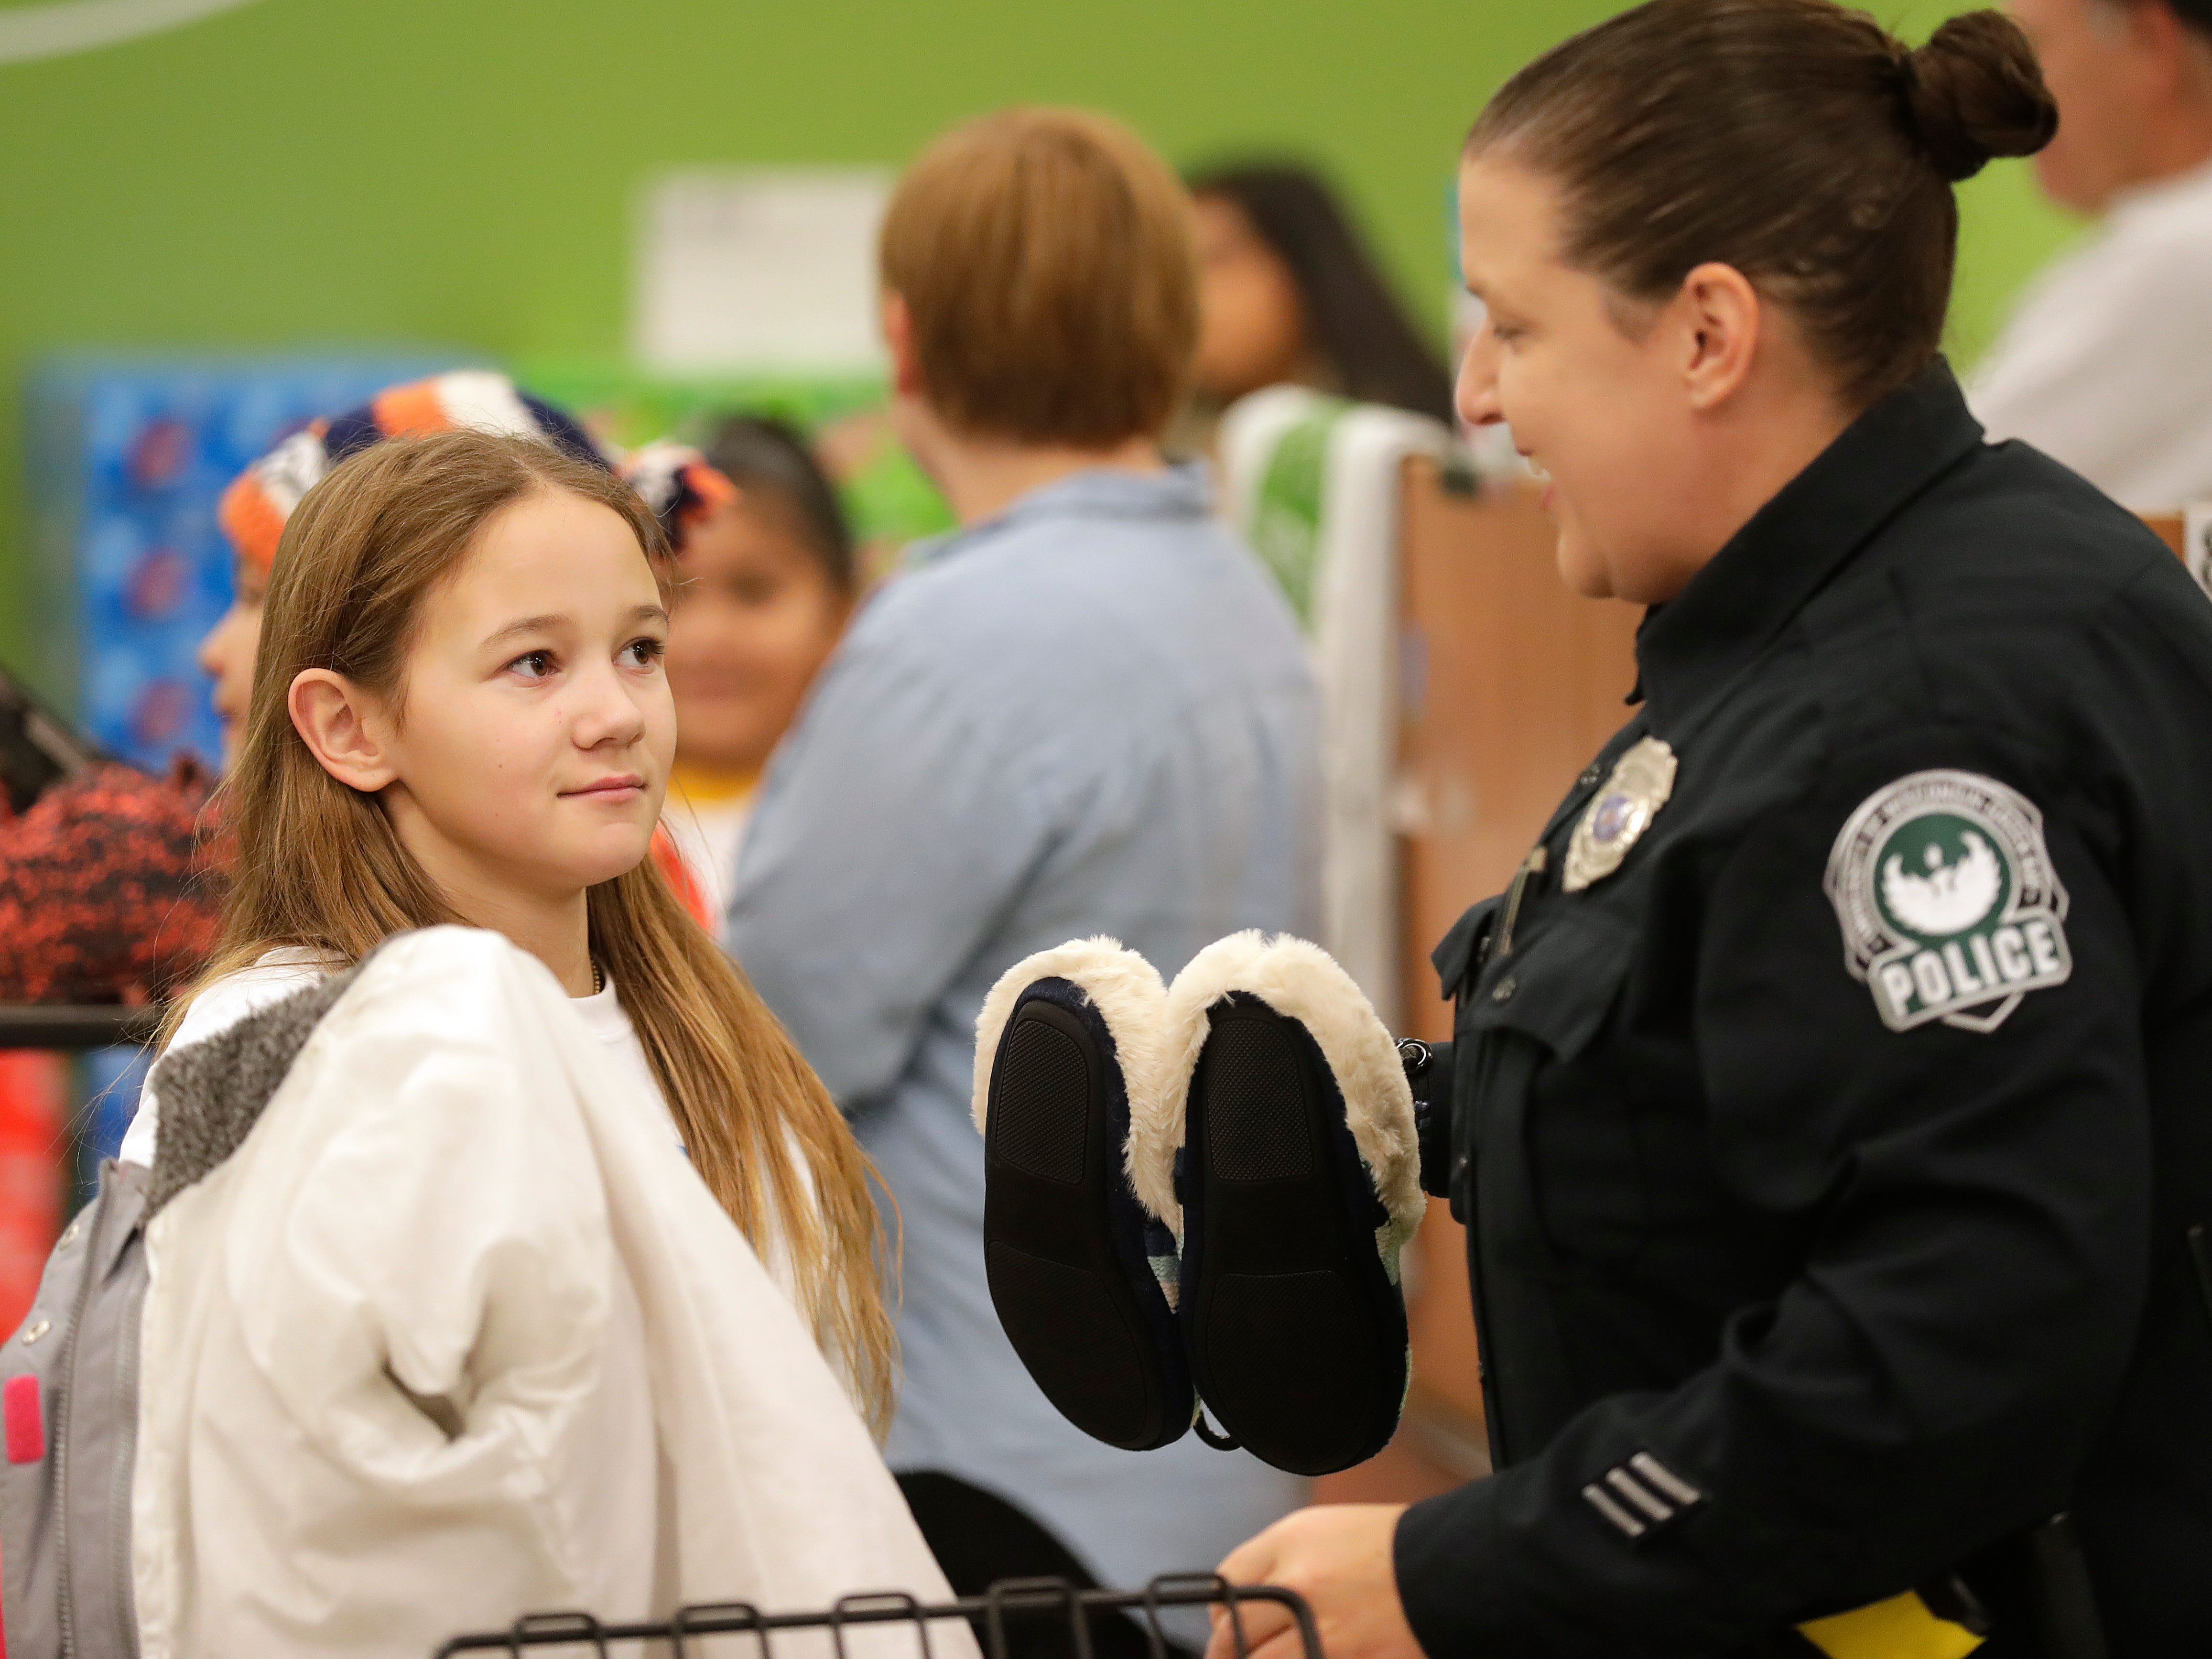 UW-Green Bay Police Department Officer Sabrina Duchateau selects gifts with her Shop with A Cop program kid at Shopko on East Mason Street December 8, 2018 in Green Bay, Wis.